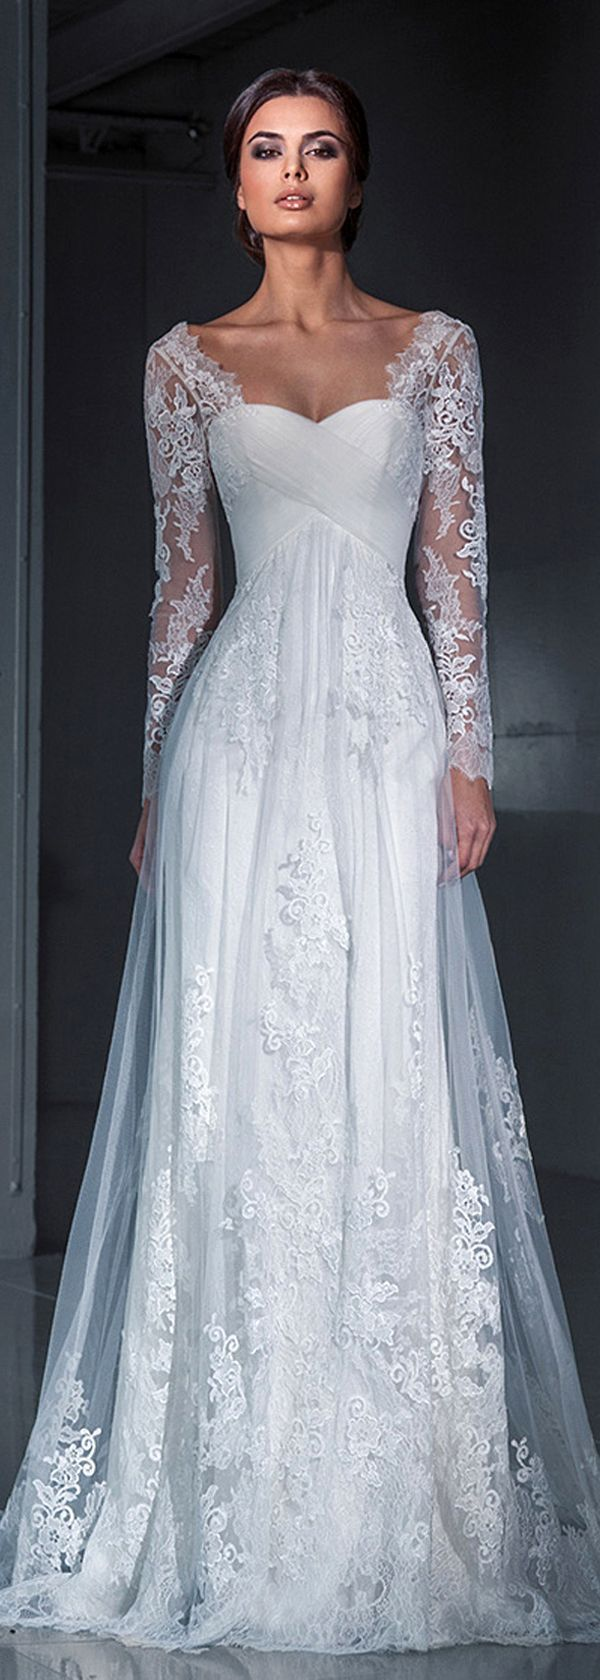 Top 50 Gorgeous Wedding Dresses with Long Sleeves | Novios, Vestidos ...